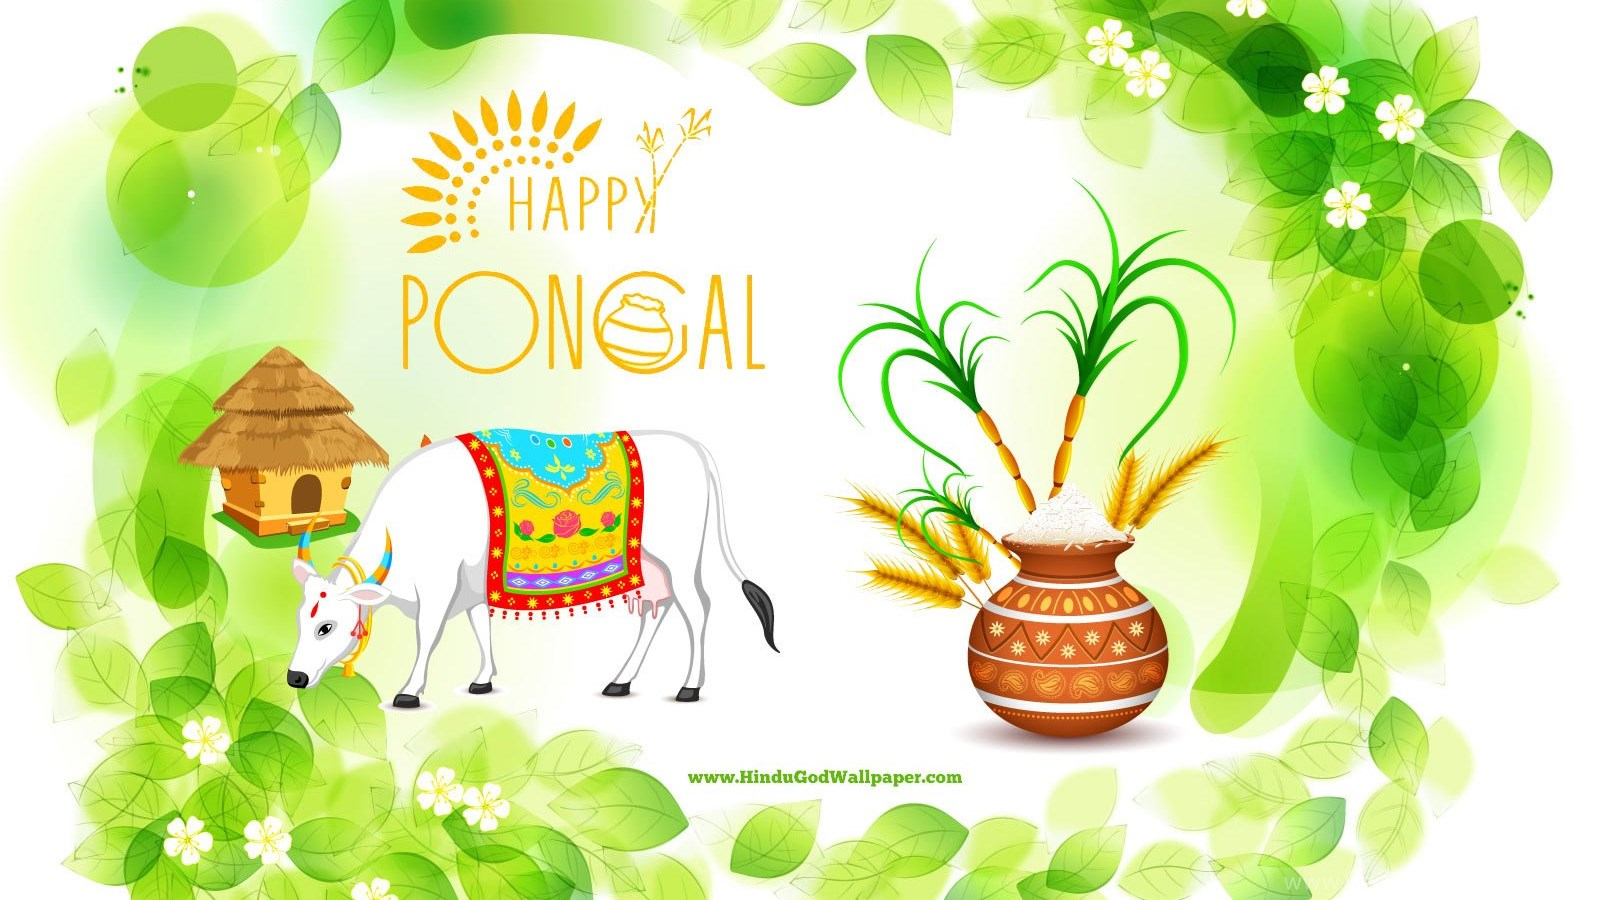 Pongal greetings wallpapers with wishes quotes desktop background popular m4hsunfo